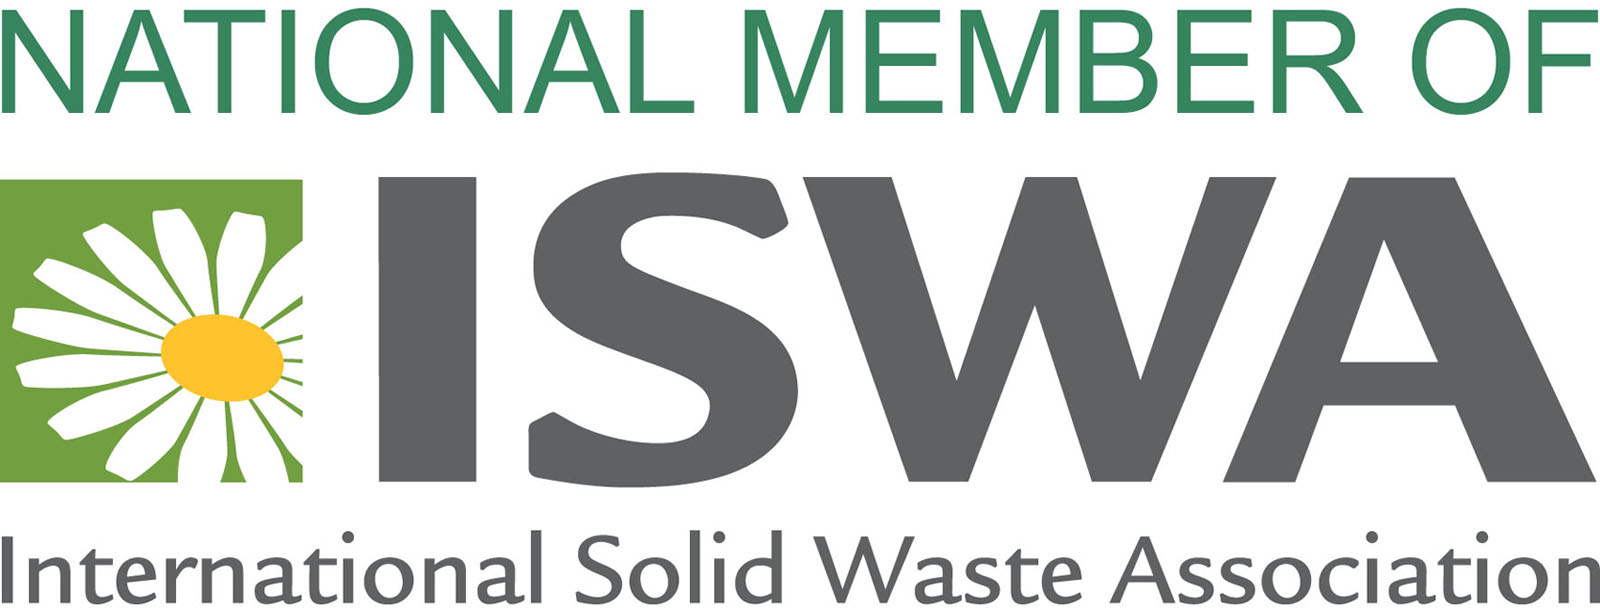 ISWA: The International Solid Waste Association